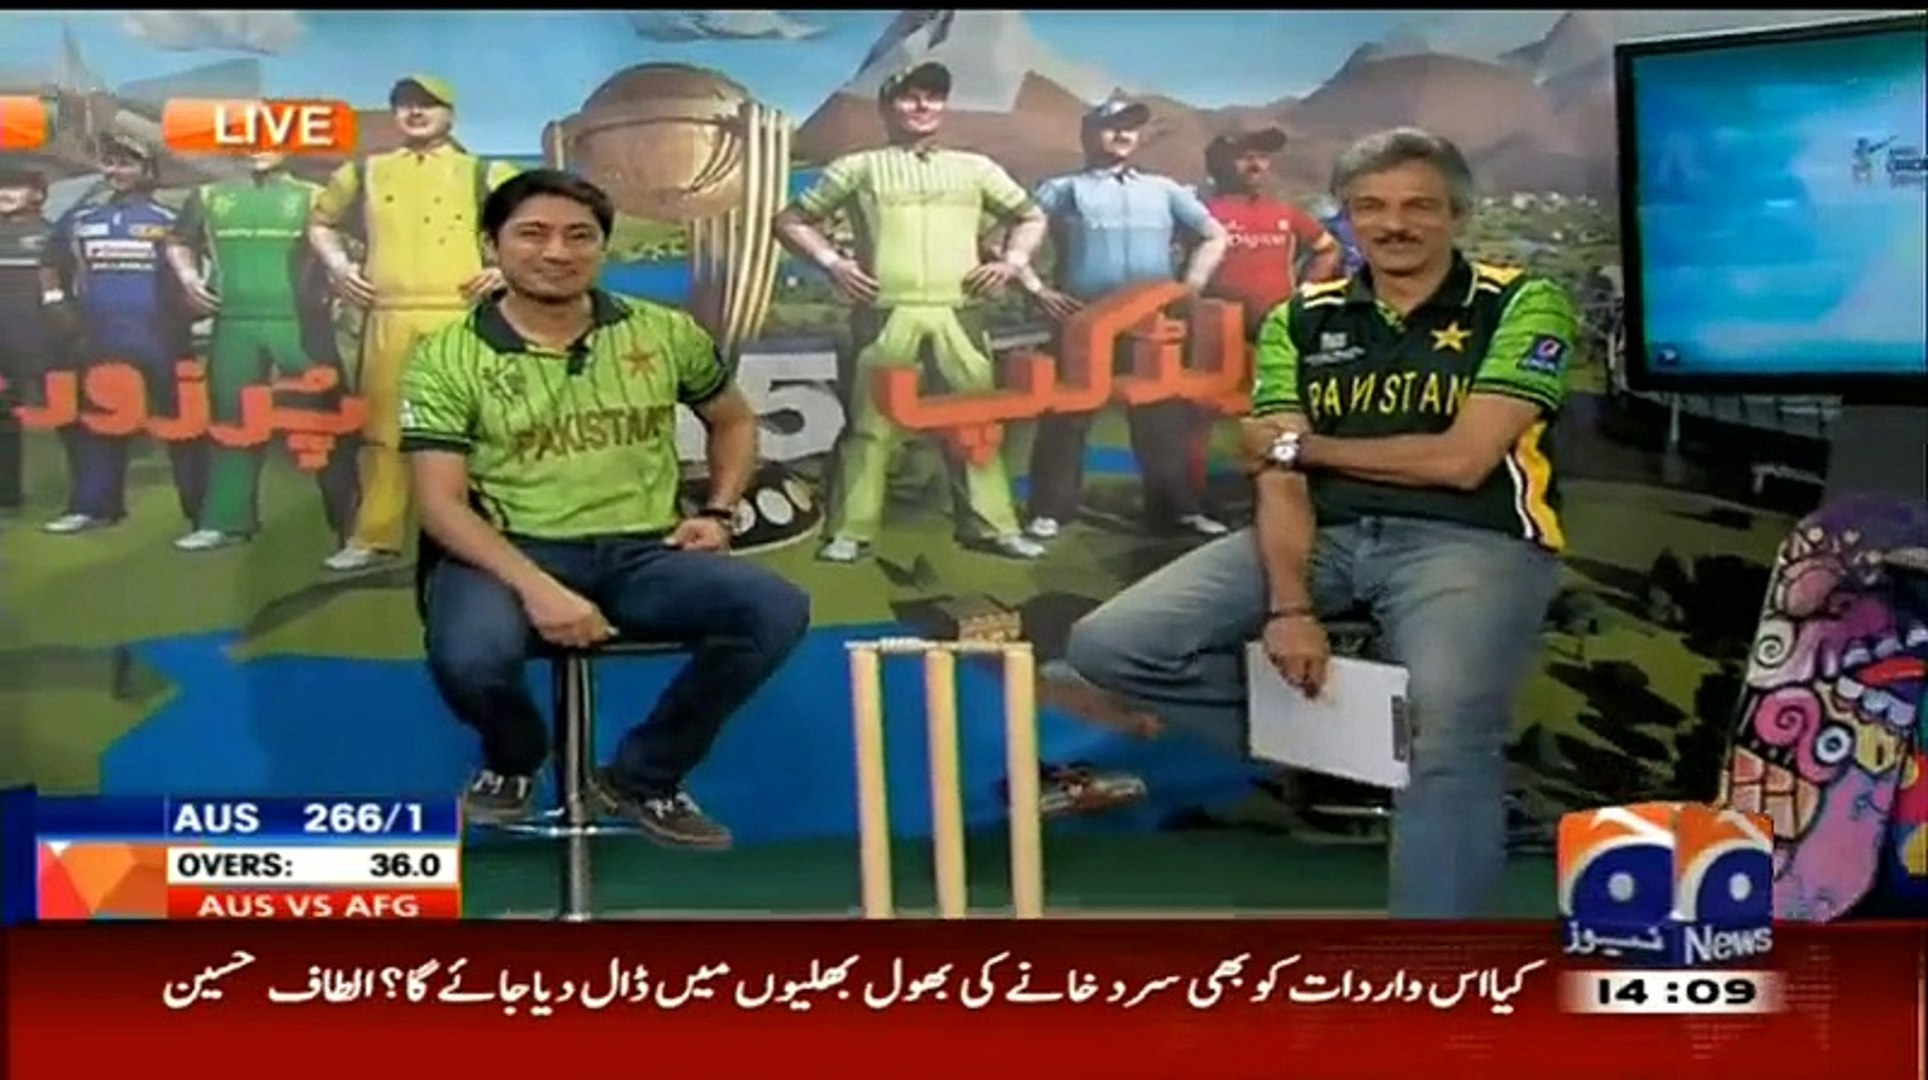 Hilarious Report by Geo News on Nasir Jamshed Catch in Today Match